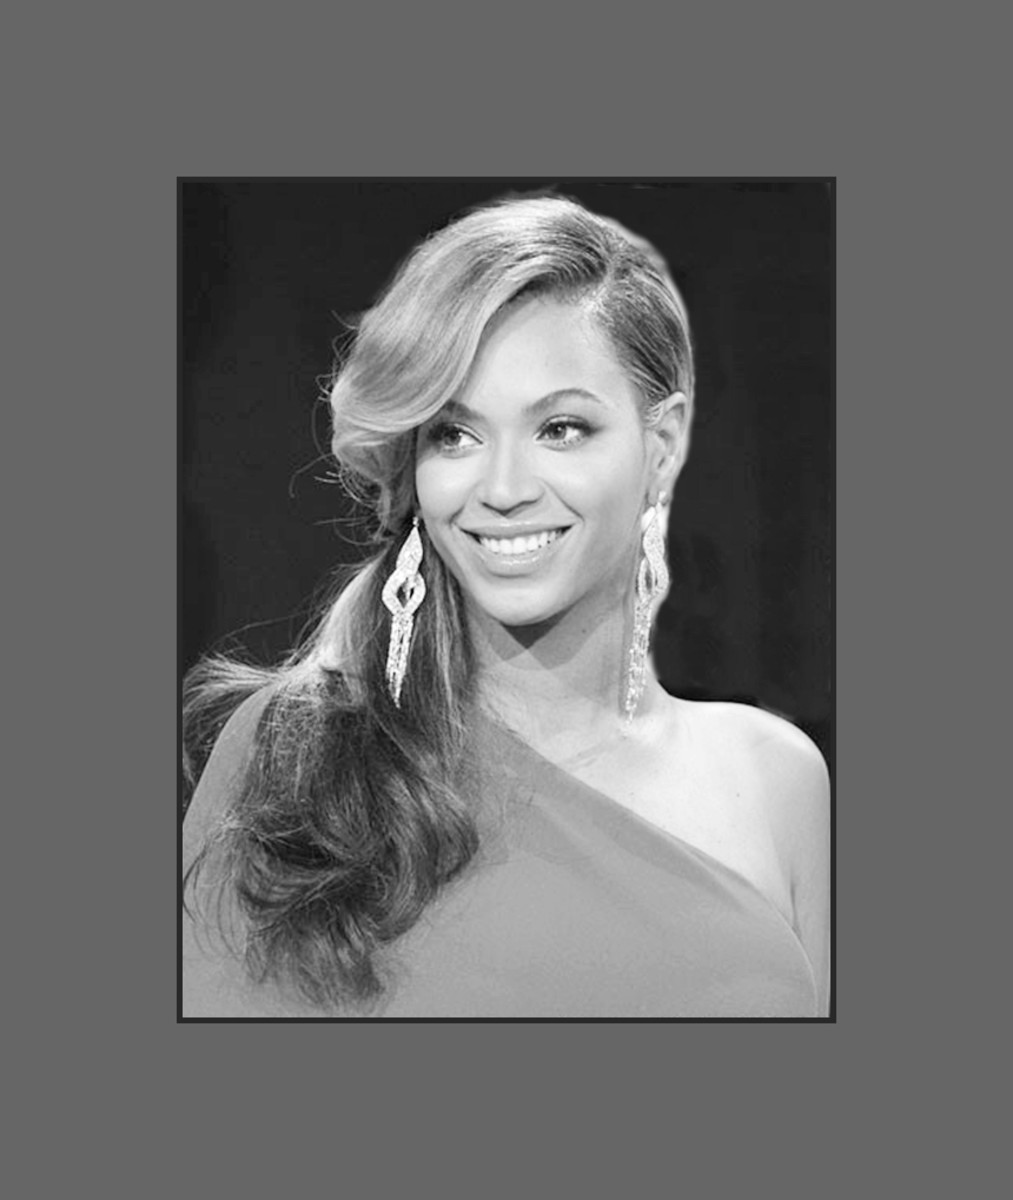 Beyonce has a perfect shaped face.  She's beautiful with or without bangs.  Her hair is side-swept to form the sultry long bangs look draping her oval face - 2013 Hairstyles with Bangs for Round, Oval, Square, Heart, Oblong Face